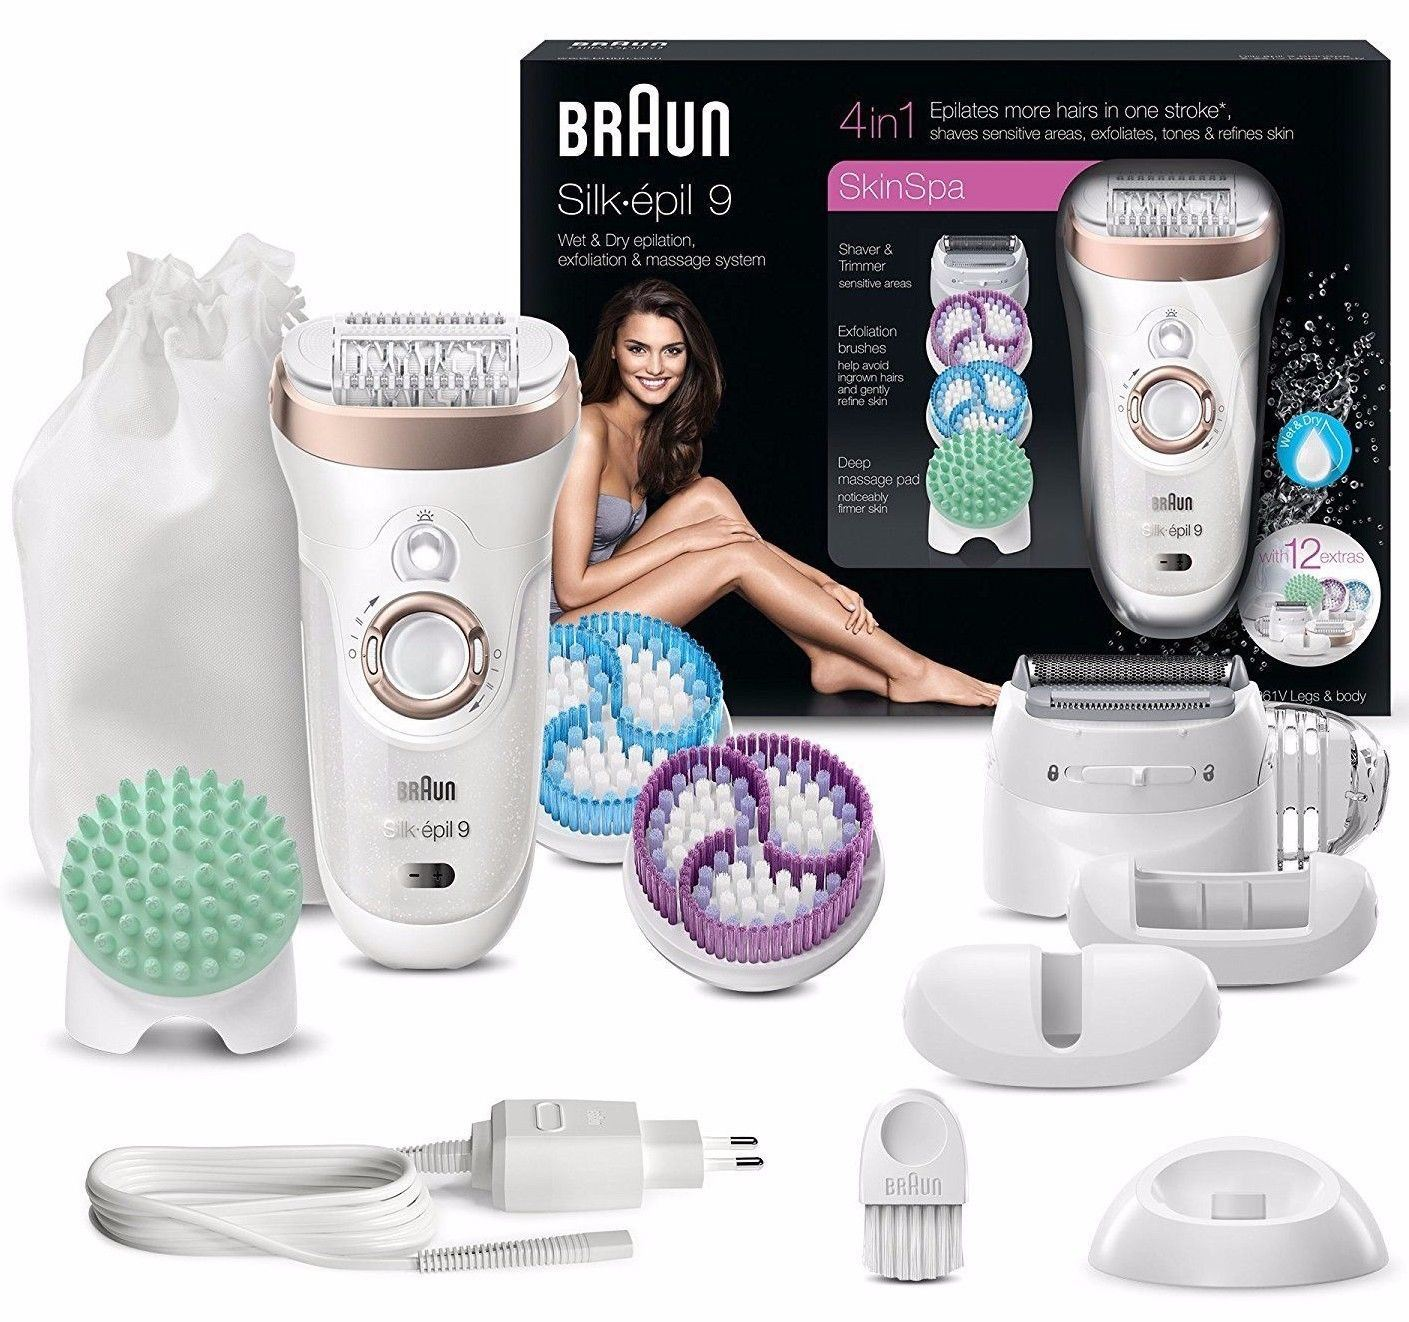 Details about Braun Silk Epilator 9-961v Womens Skin Spa 9 Wet   Dry Hair  Removal 12 Pieces fe5d0b1e5